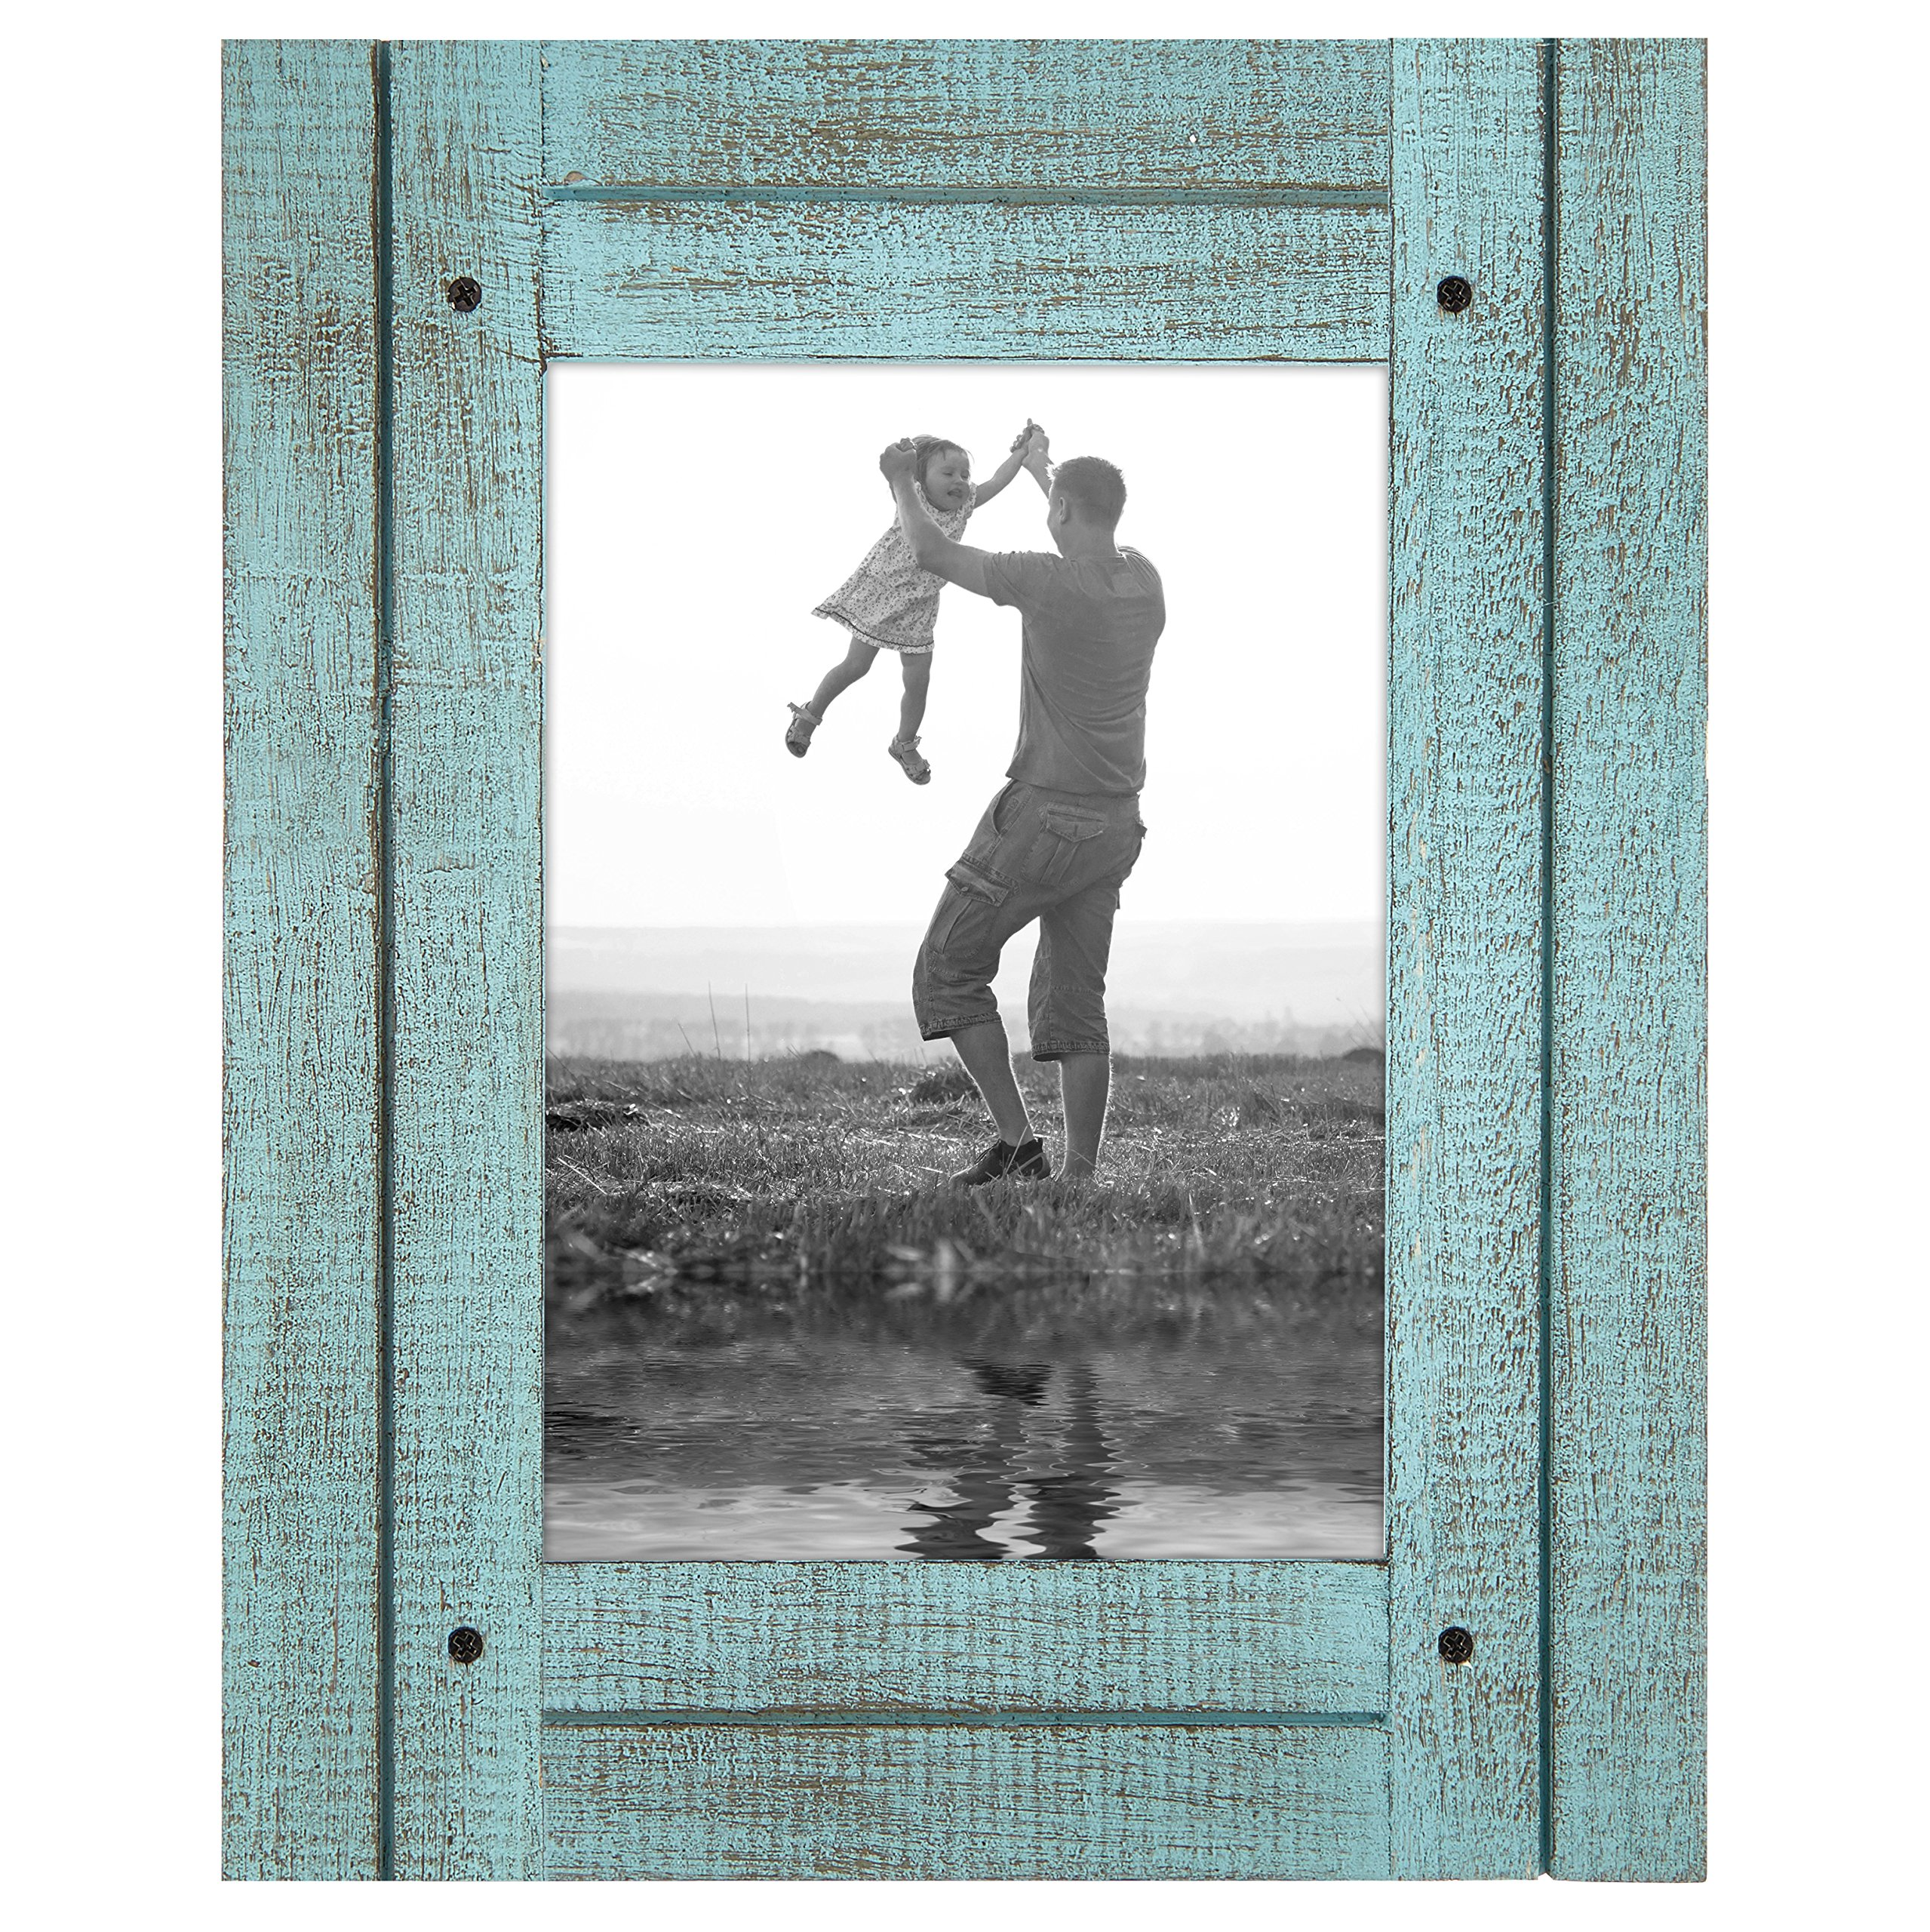 Americanflat 5x7 Turquoise Blue Distressed Wood Frame - Made to Display 5x7 Photos - Ready to Hang - Ready to Stand - Built-in Easel